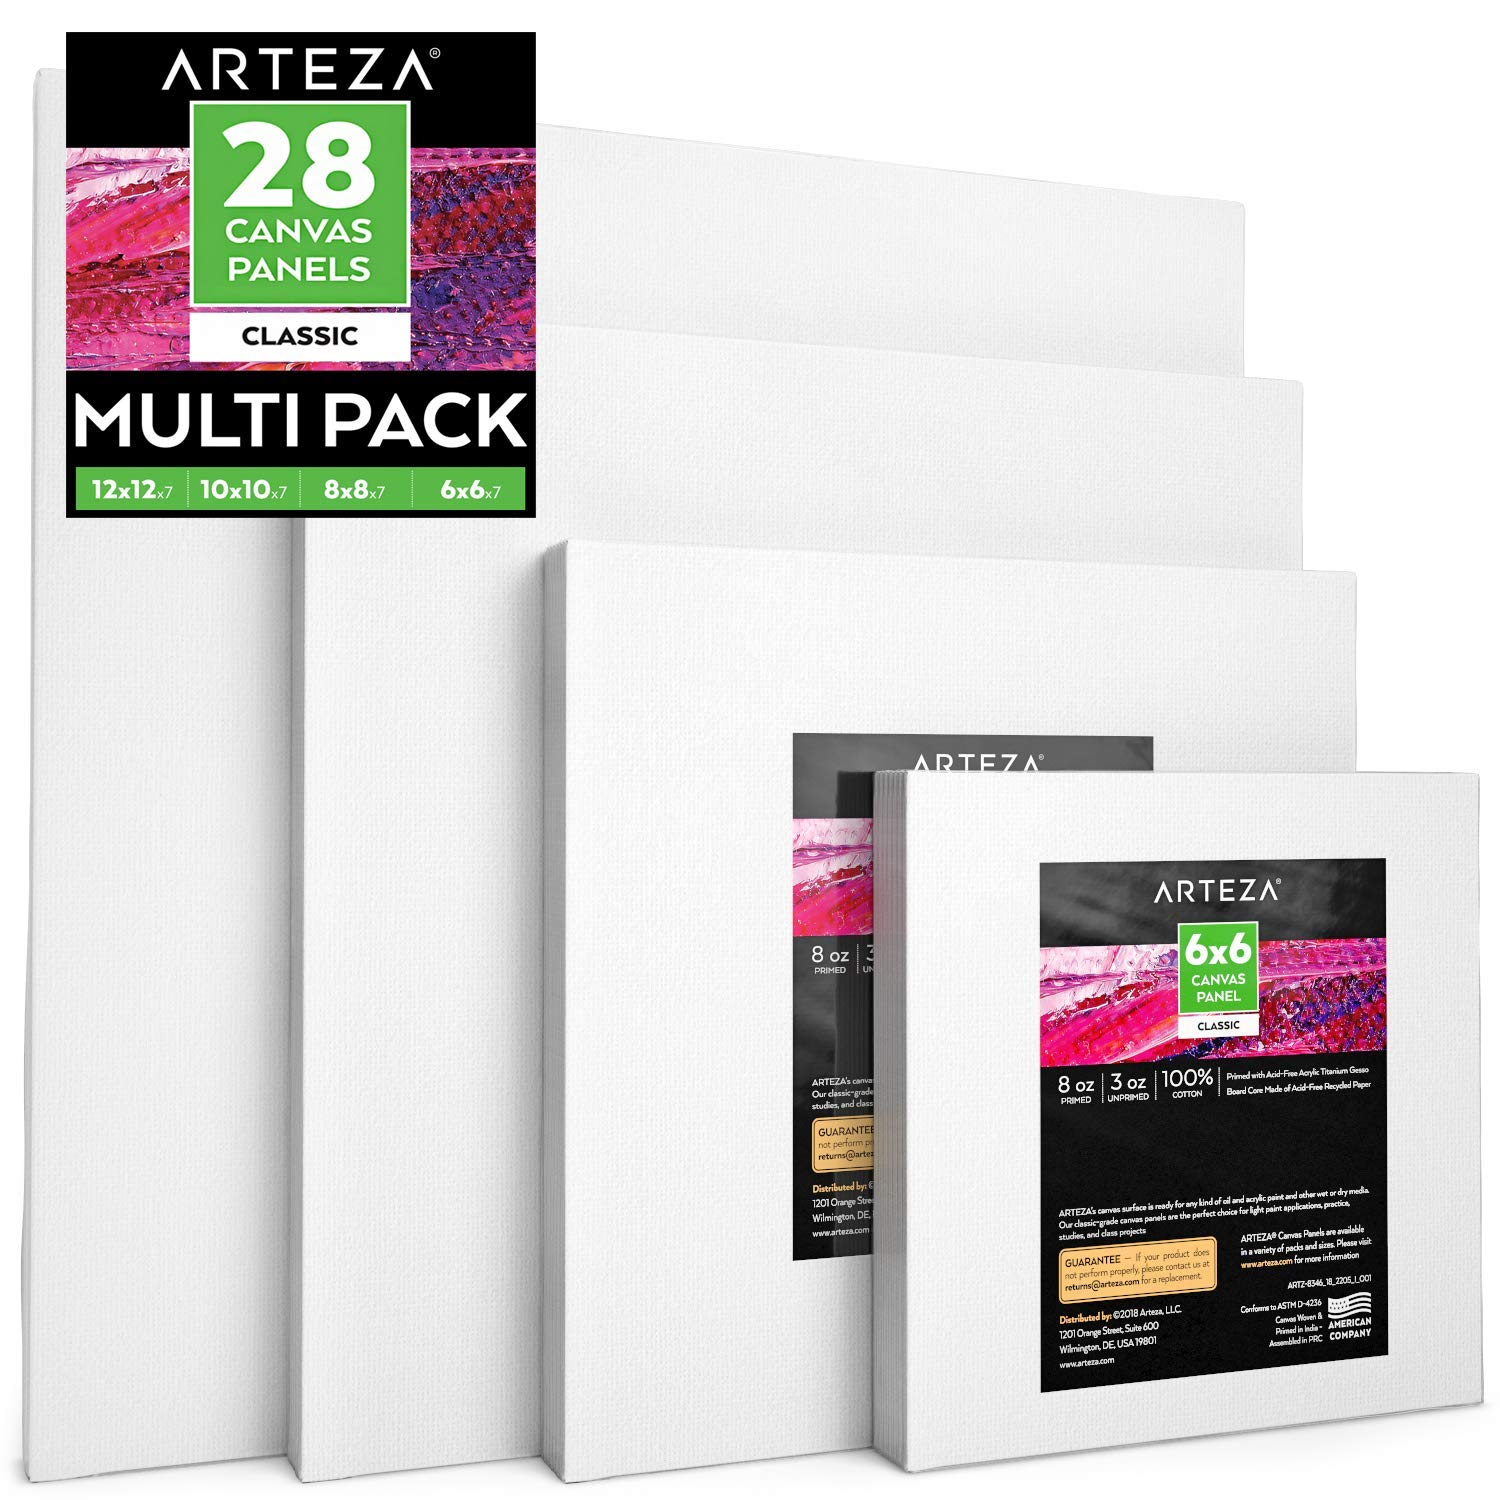 Arteza Painting Canvas Panels Multi Pack, 6x6'', 8x8'', 10x10'', 12x12'' Set of 28, Primed White, 100% Cotton with Recycled Board Core, for Acrylic, Oil, Other Wet or Dry Art Media, for Artists by ARTEZA